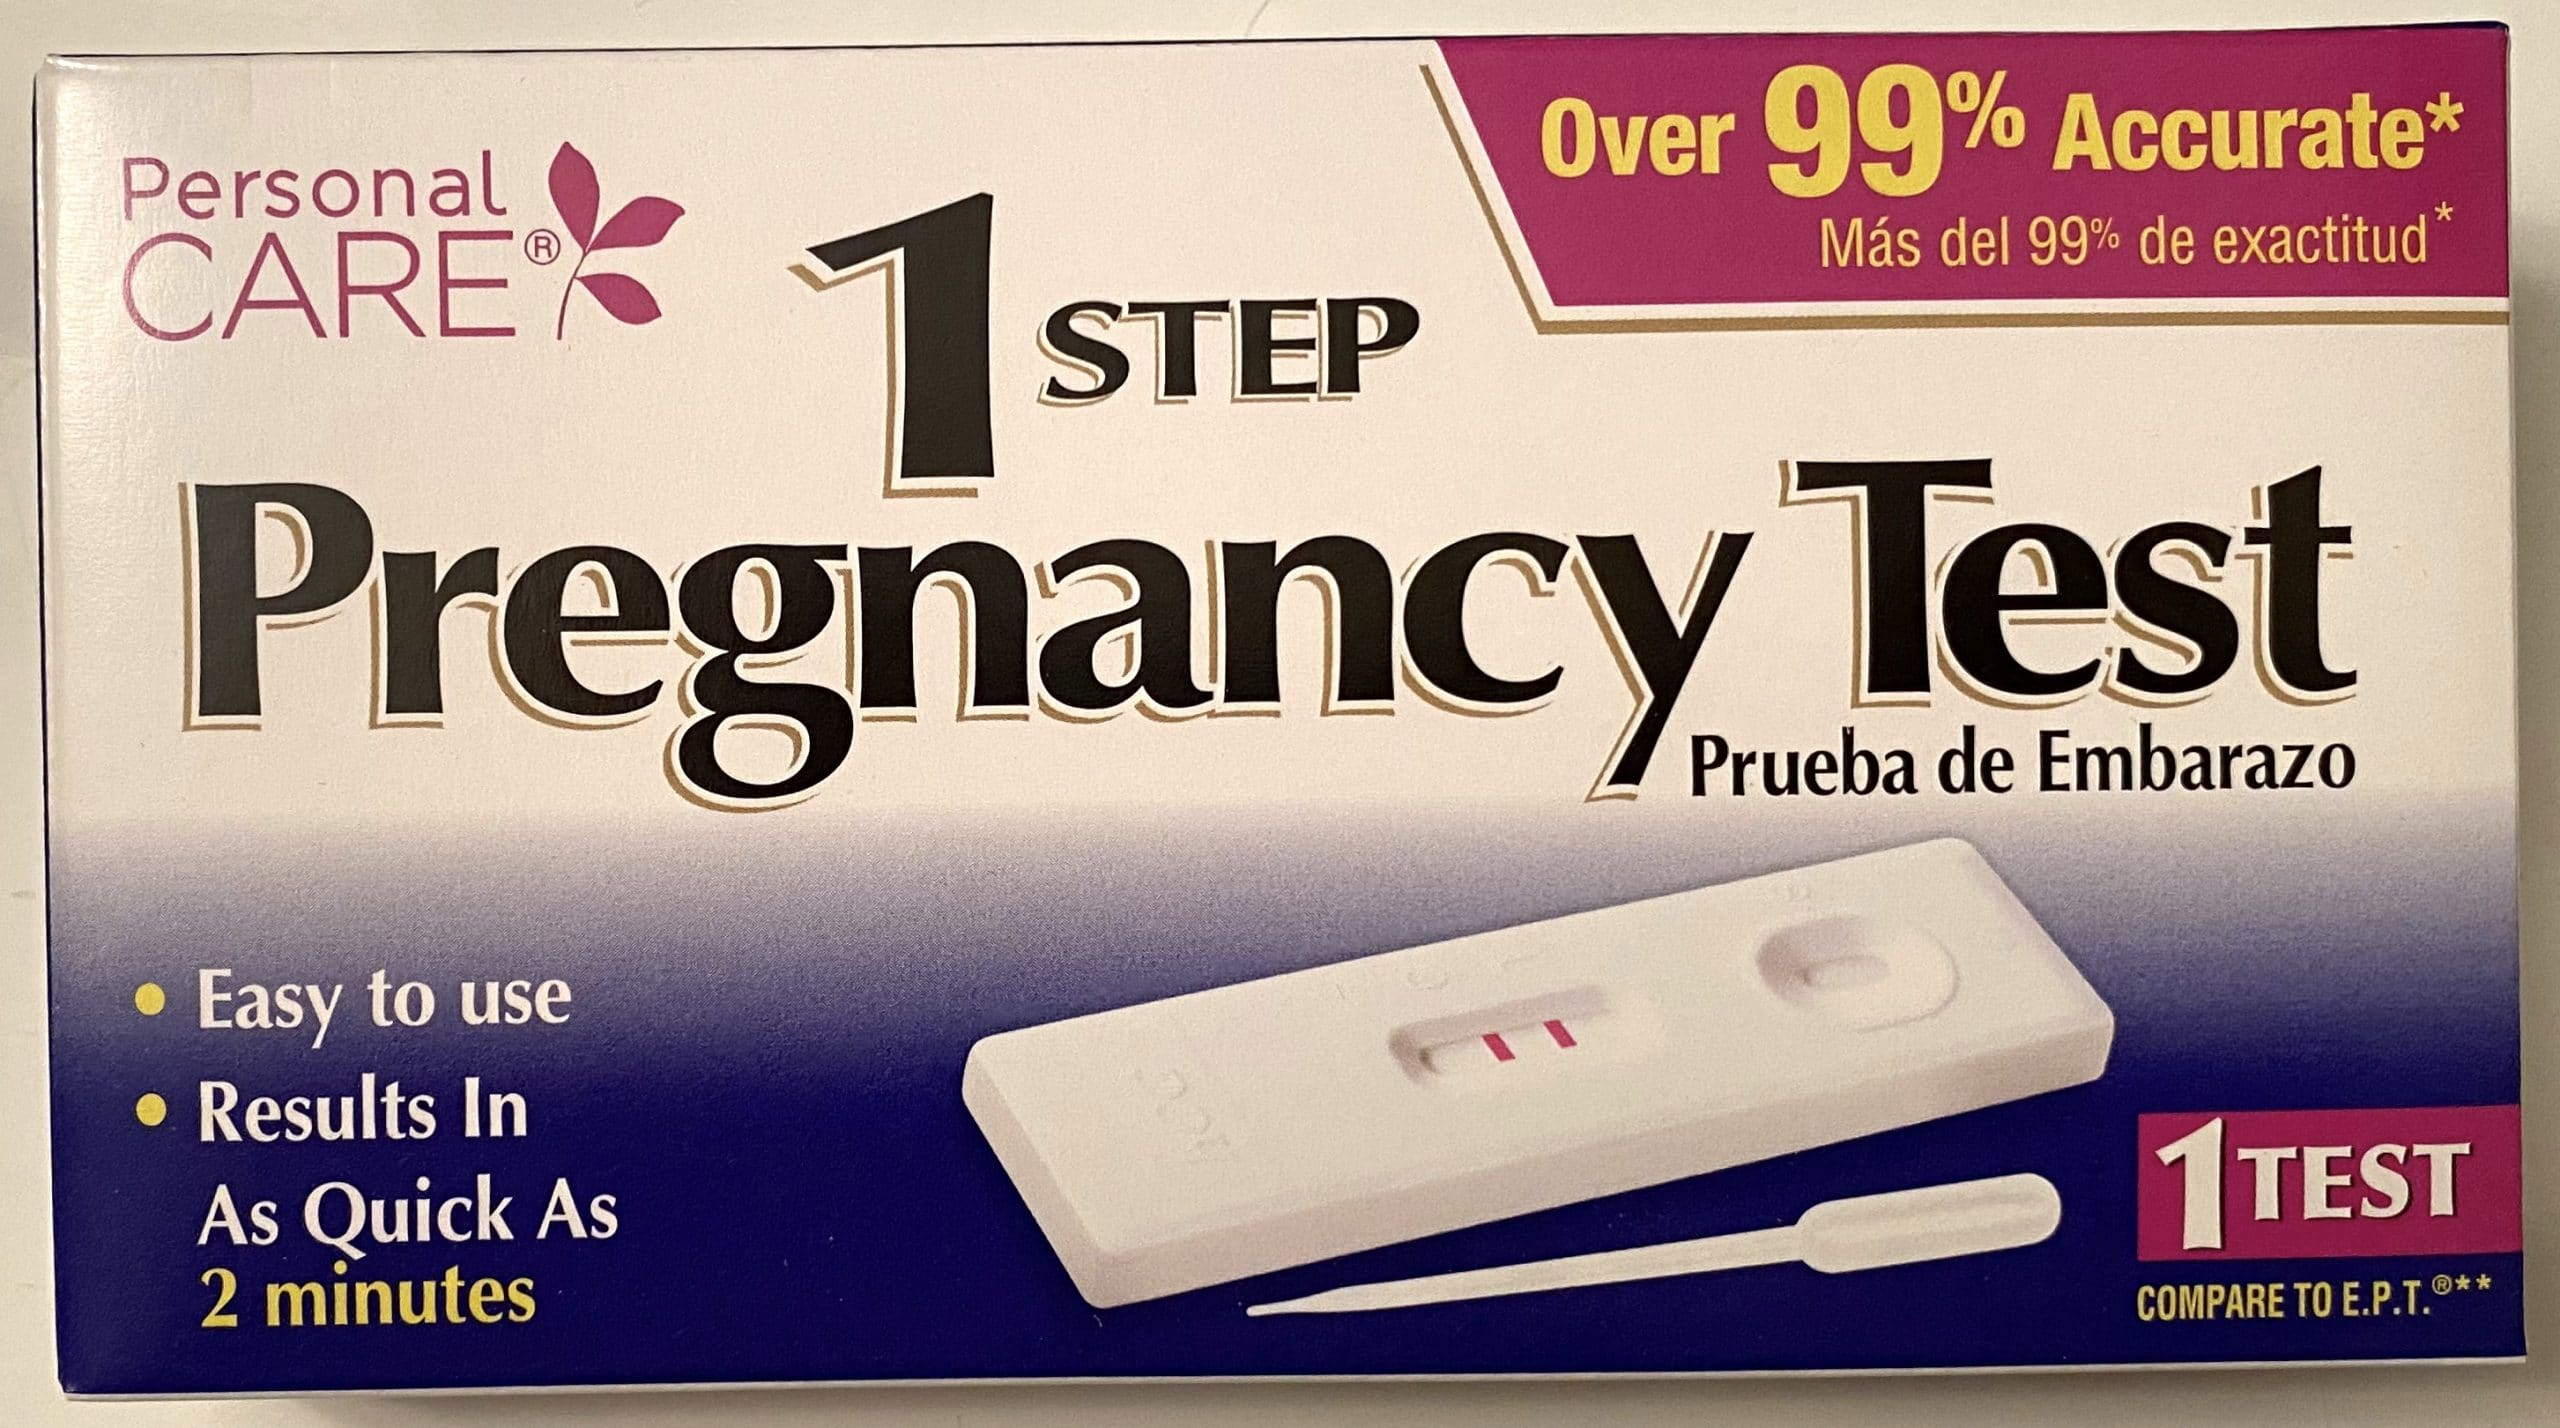 Personal Care 1 Step Pregnancy Test